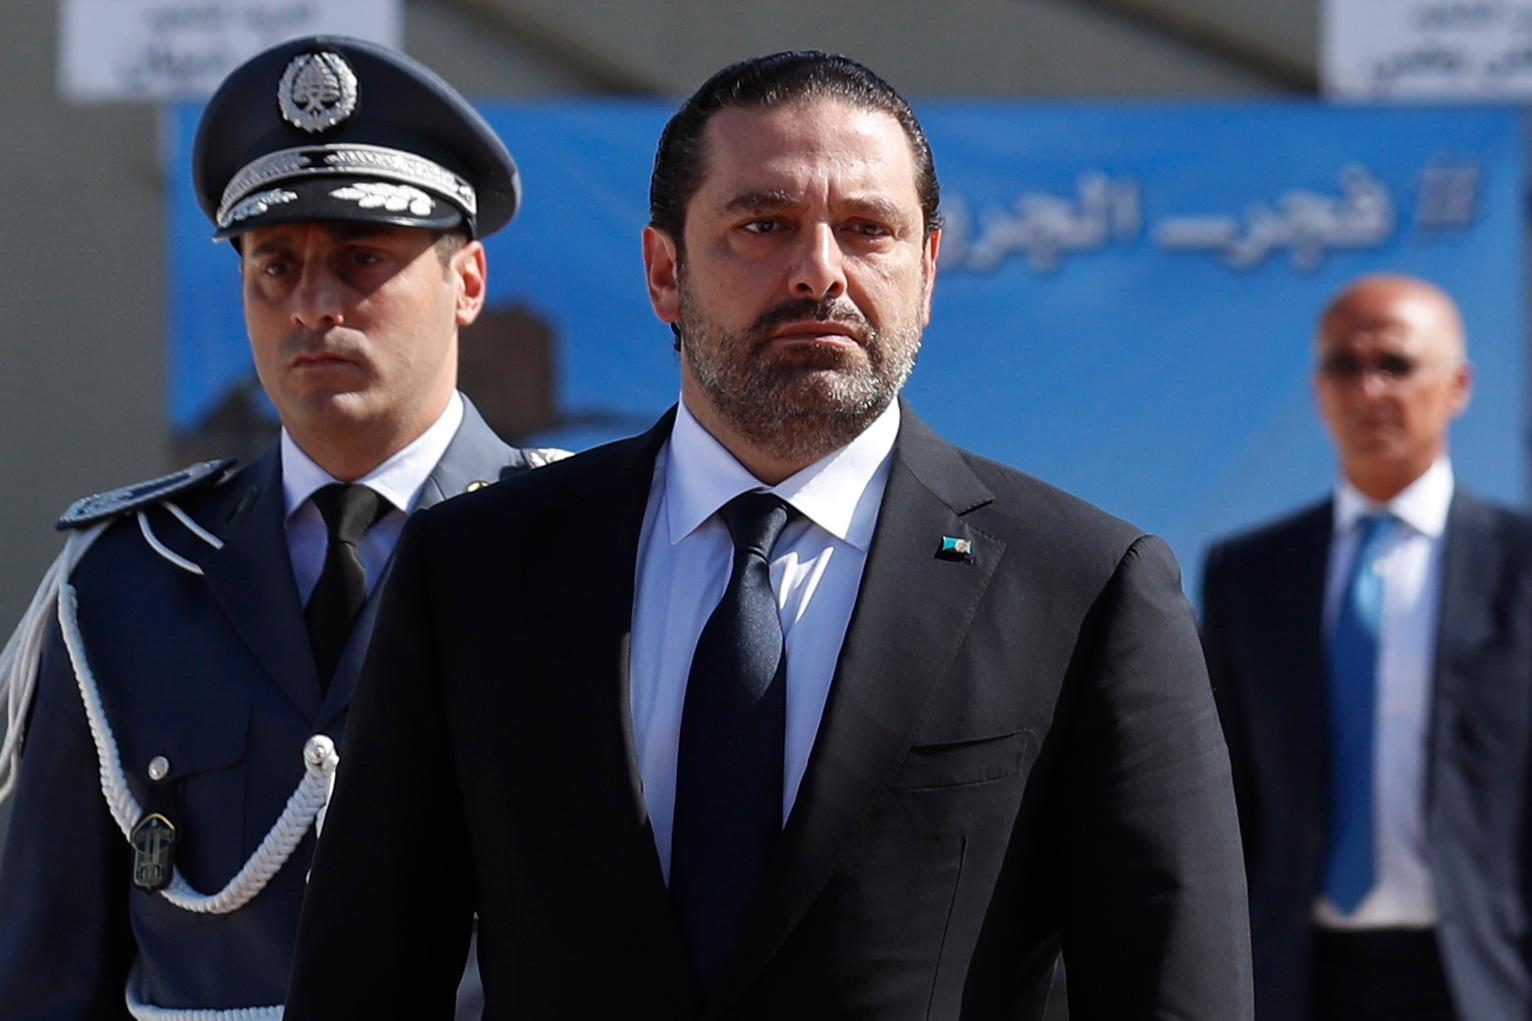 Image Lebanese Prime Minister Saad Hariri, left, arrives for a mass funeral of ten Lebanese soldiers at the Lebanese Defense Ministry, in Yarzeh near Beirut, Lebanon, Sept. 8, 2017 (Hassan Ammar/Associated Press)